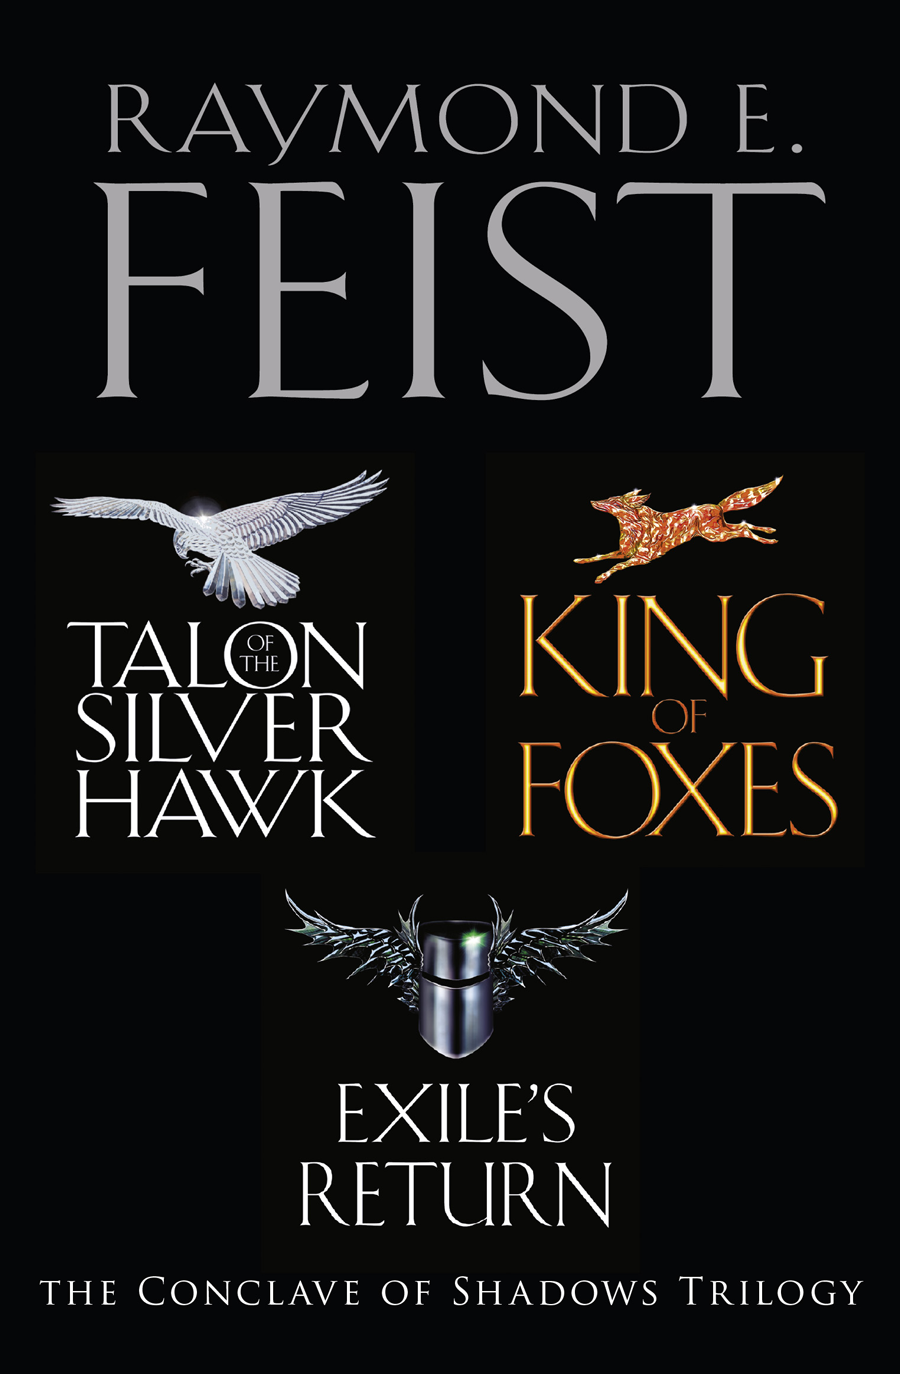 Raymond E. Feist The Complete Conclave of Shadows Trilogy: Talon of the Silver Hawk, King of Foxes, Exile's Return the art of the uncharted trilogy